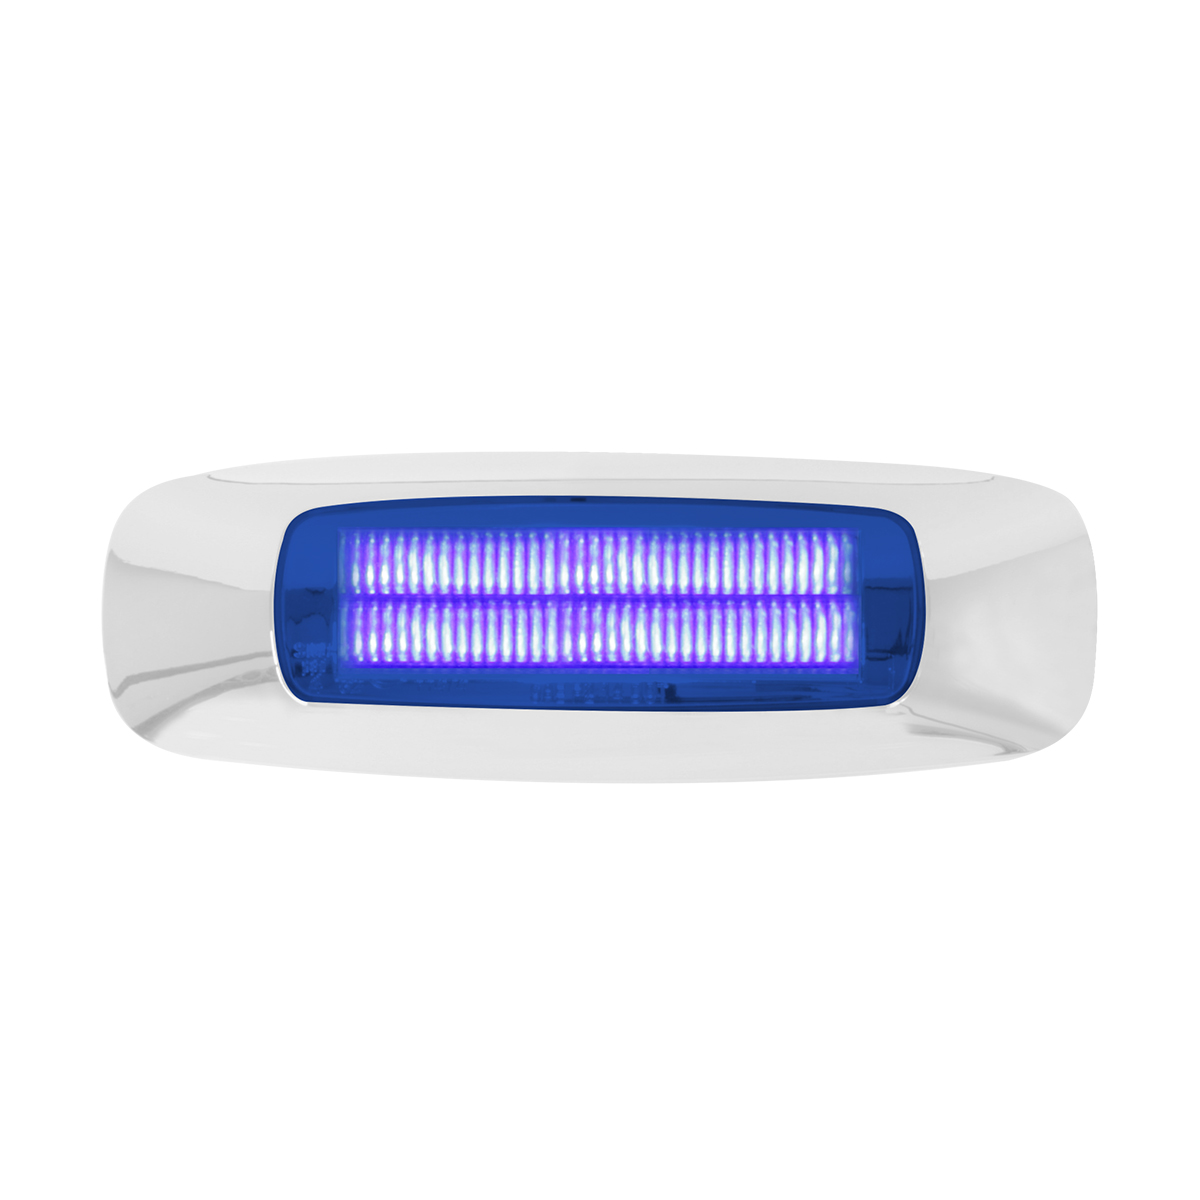 "74835 4-5/8"" Rectangular Prime LED Marker Light in Blue/Blue"